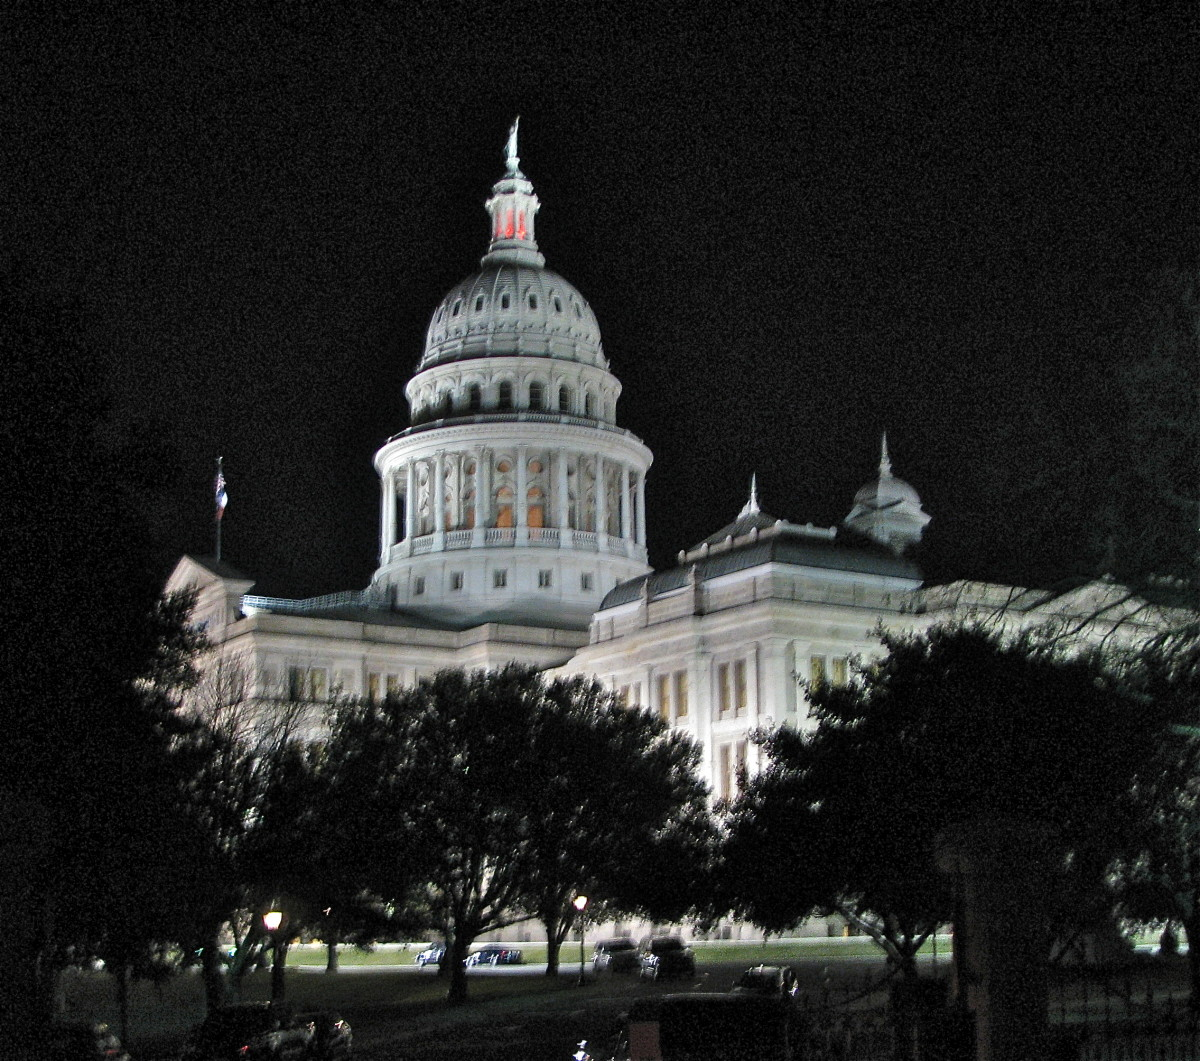 The Texas Capitol lights up the entire sky at night